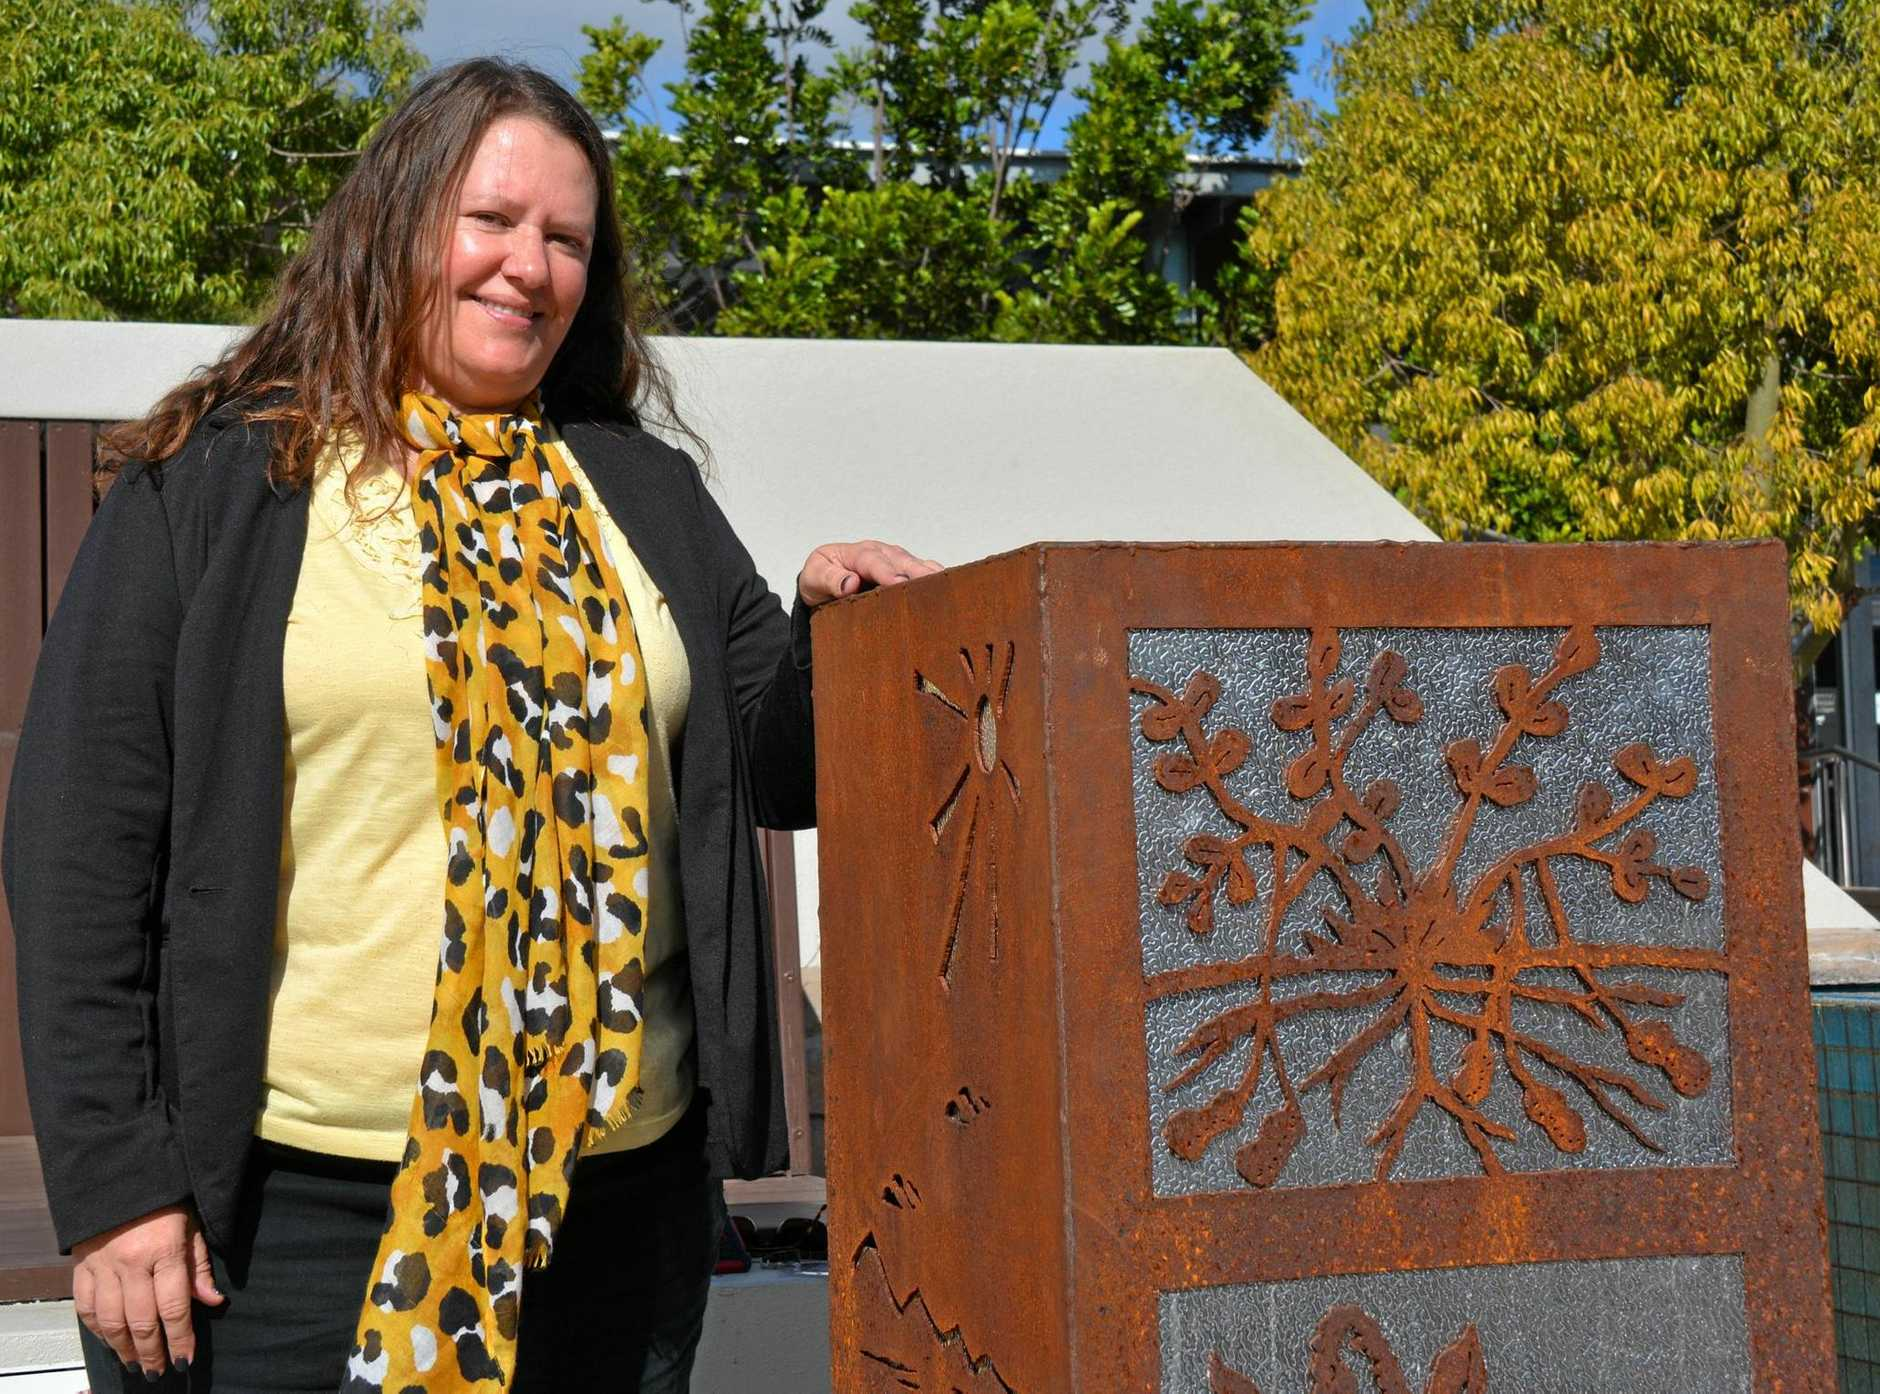 SUPPORT FOR THE ARTS: South Burnett Regional Councillor Danita Potter with Ina Patterson's sculpture, Postcards from the South Burnett.